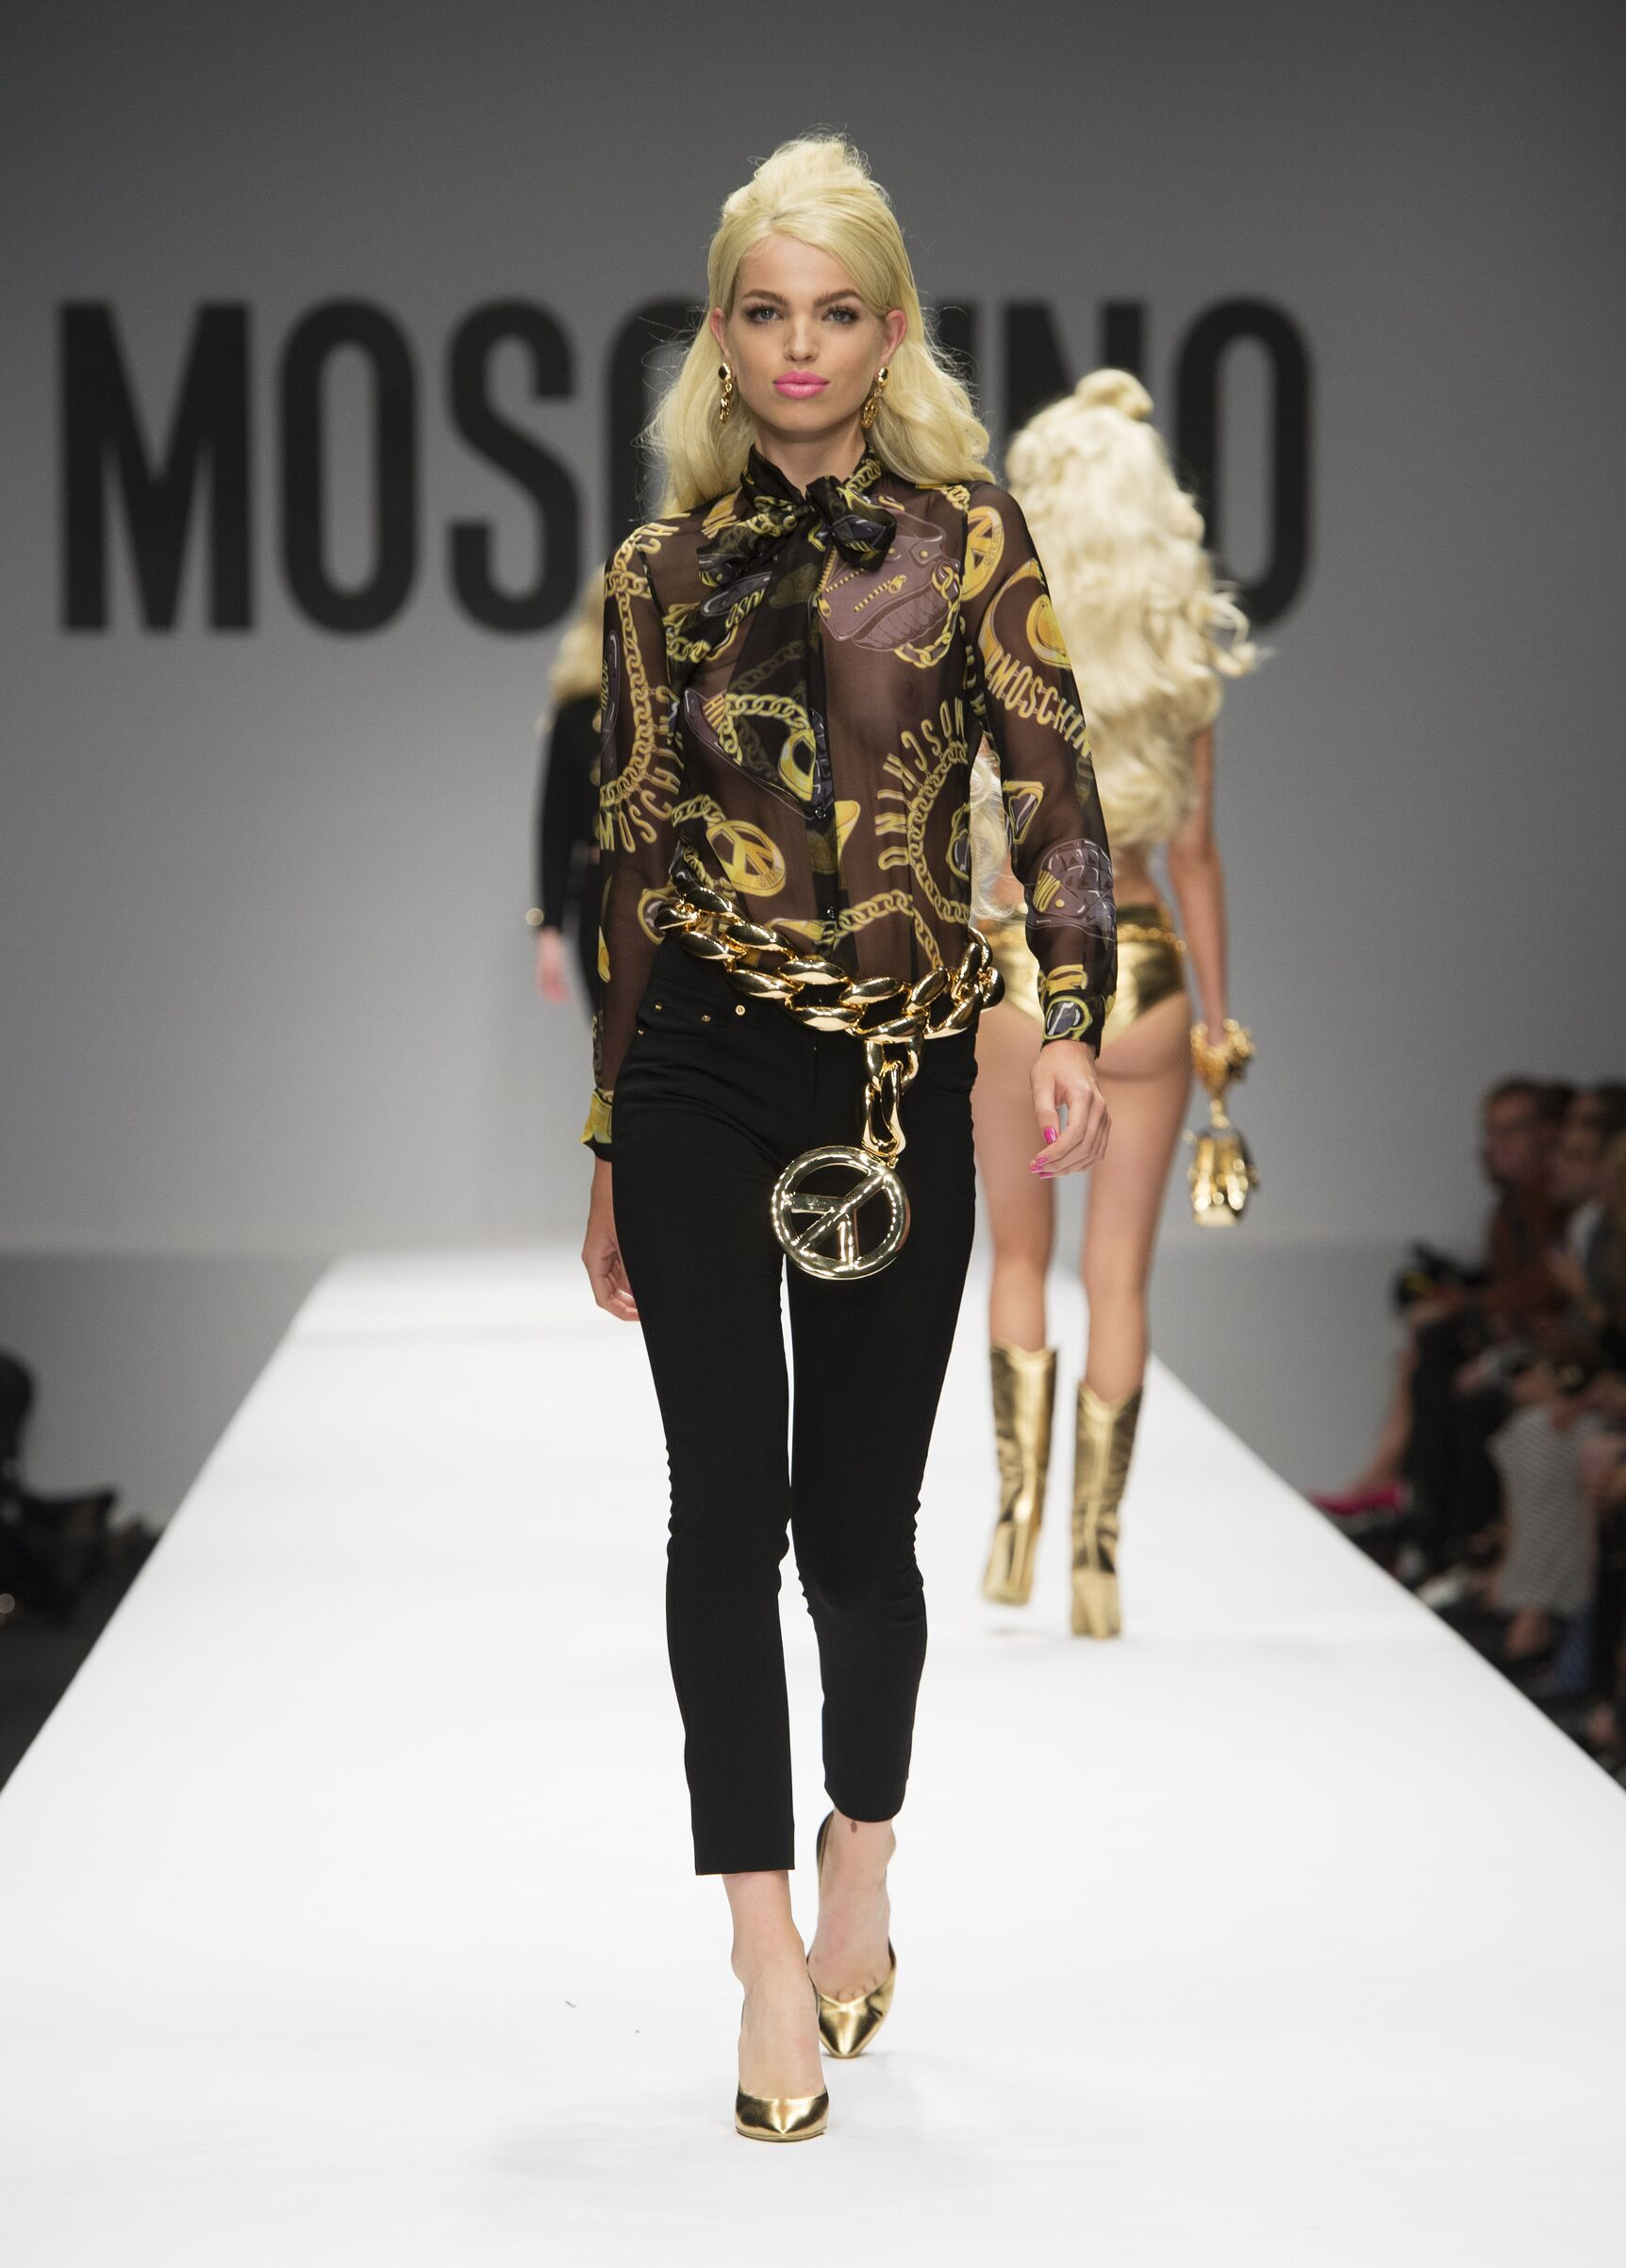 SS 2015 Moschino Fashion Show